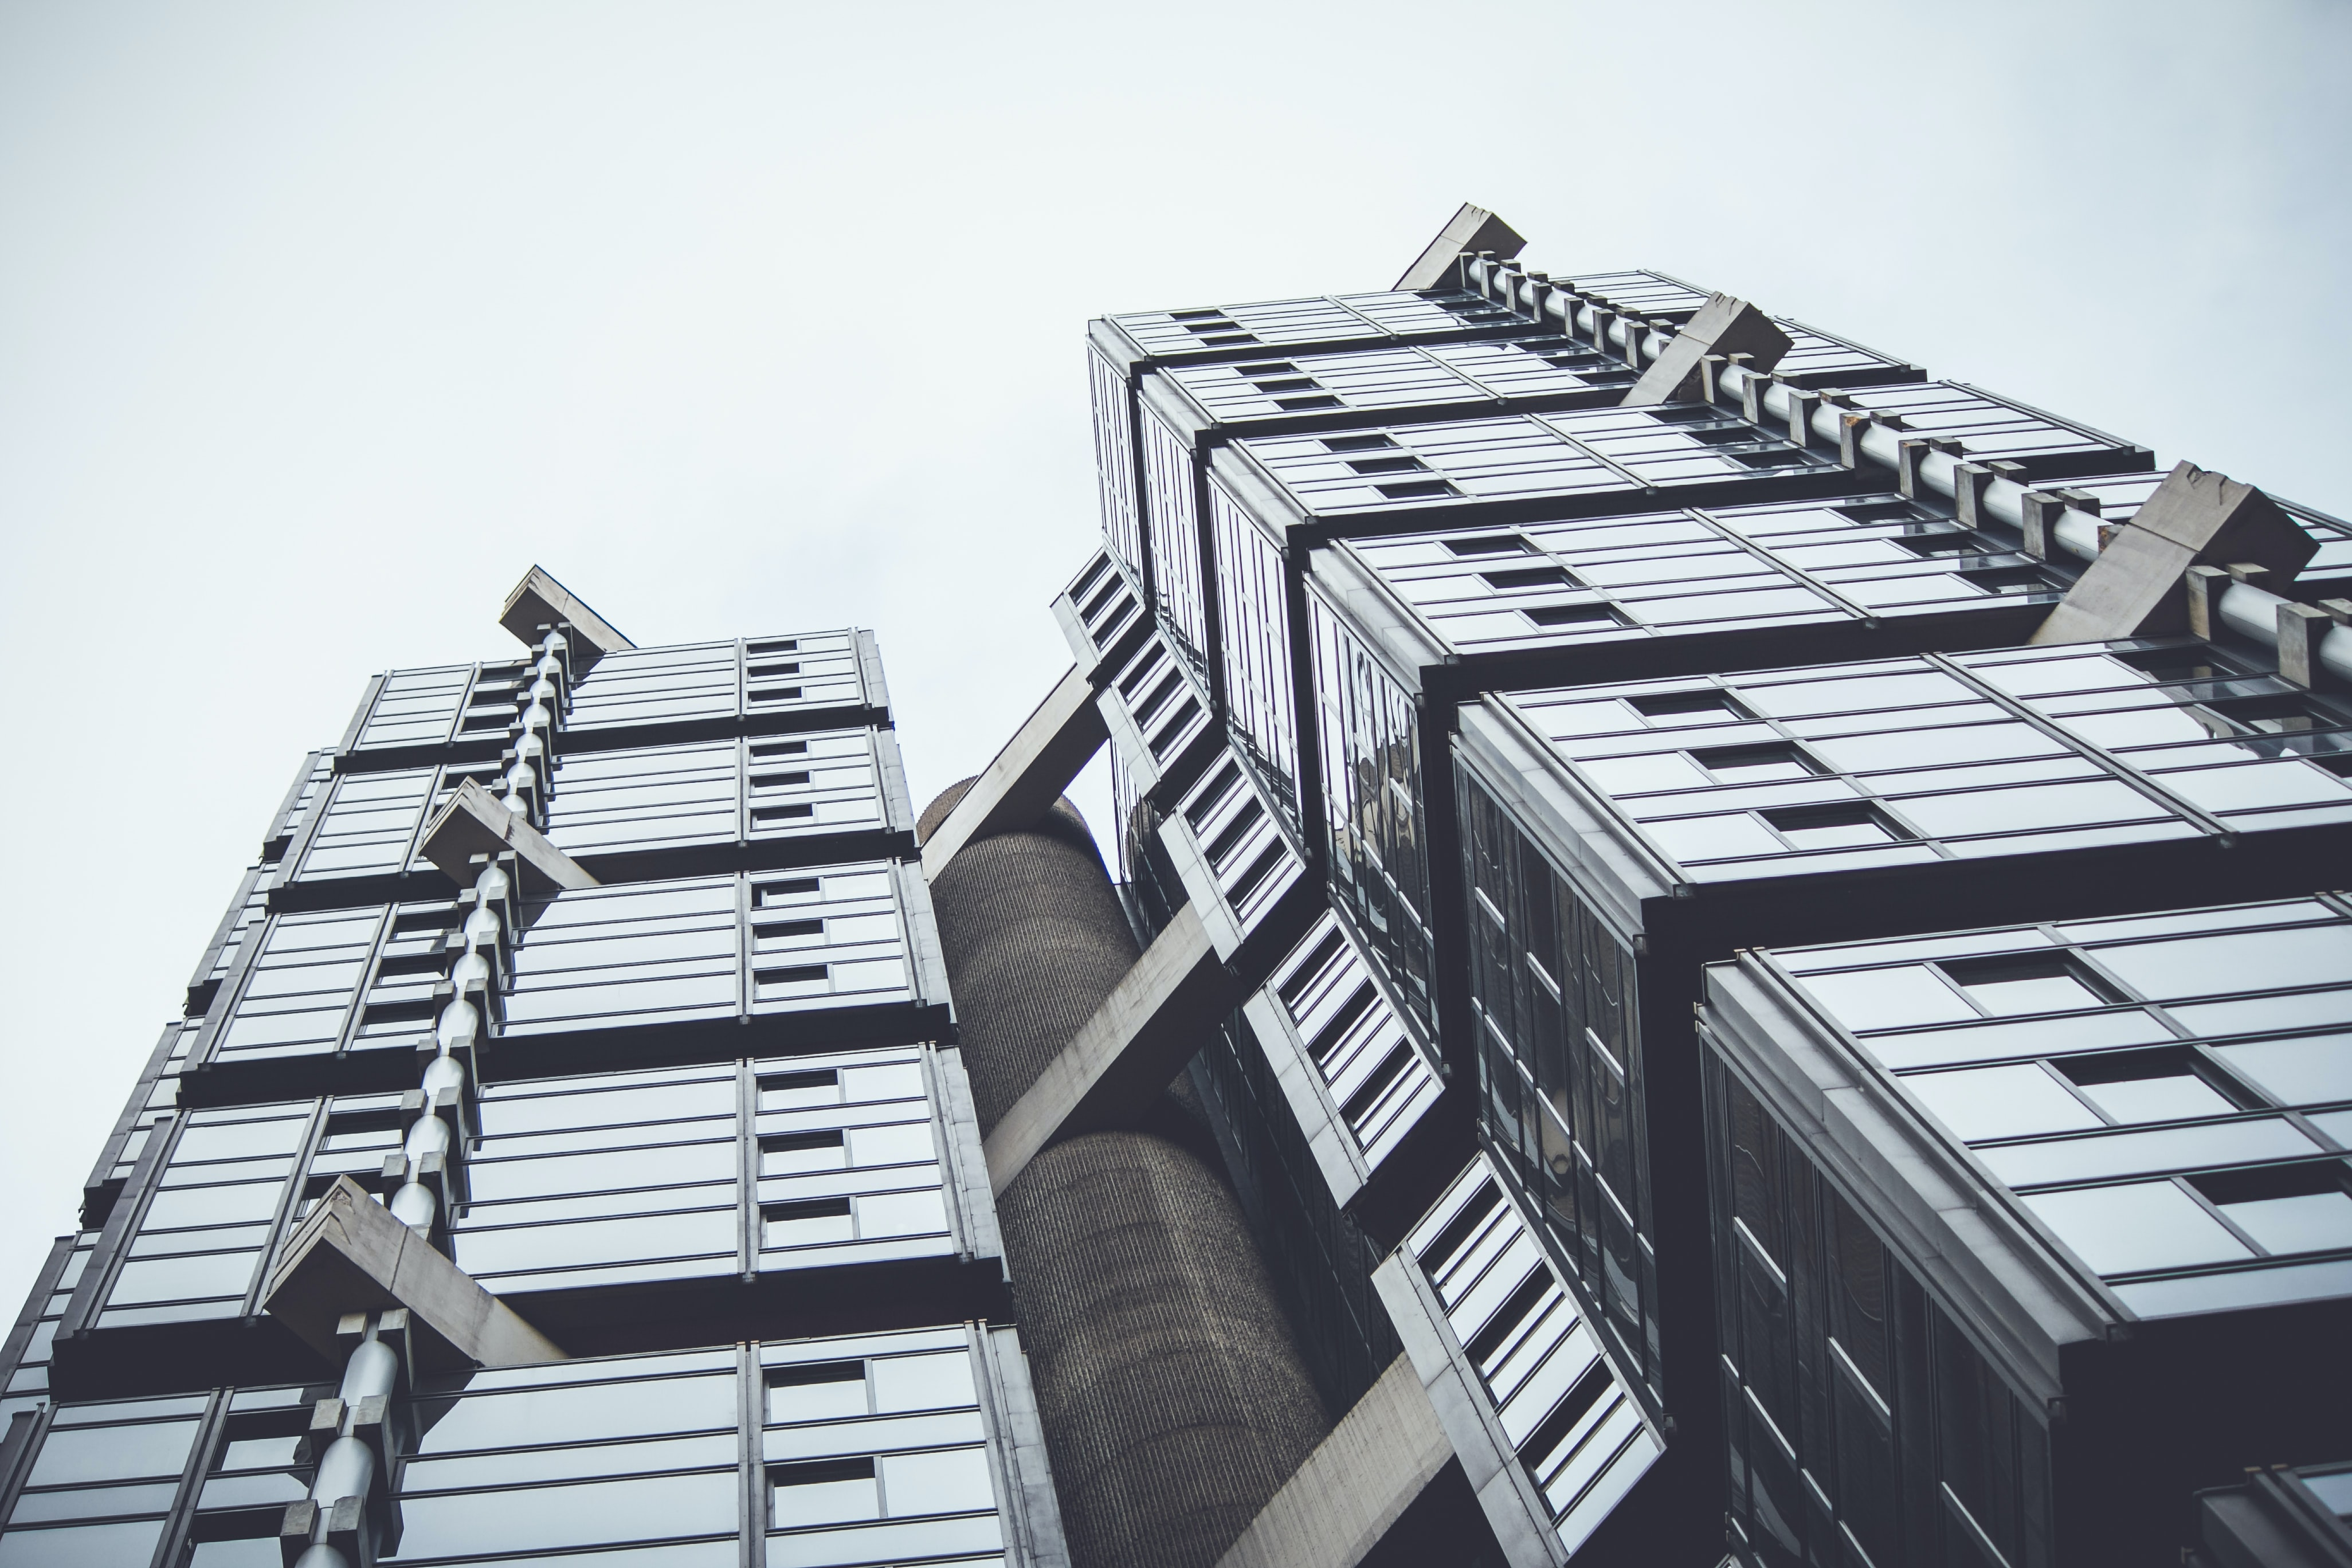 wormseye view of high-rises building